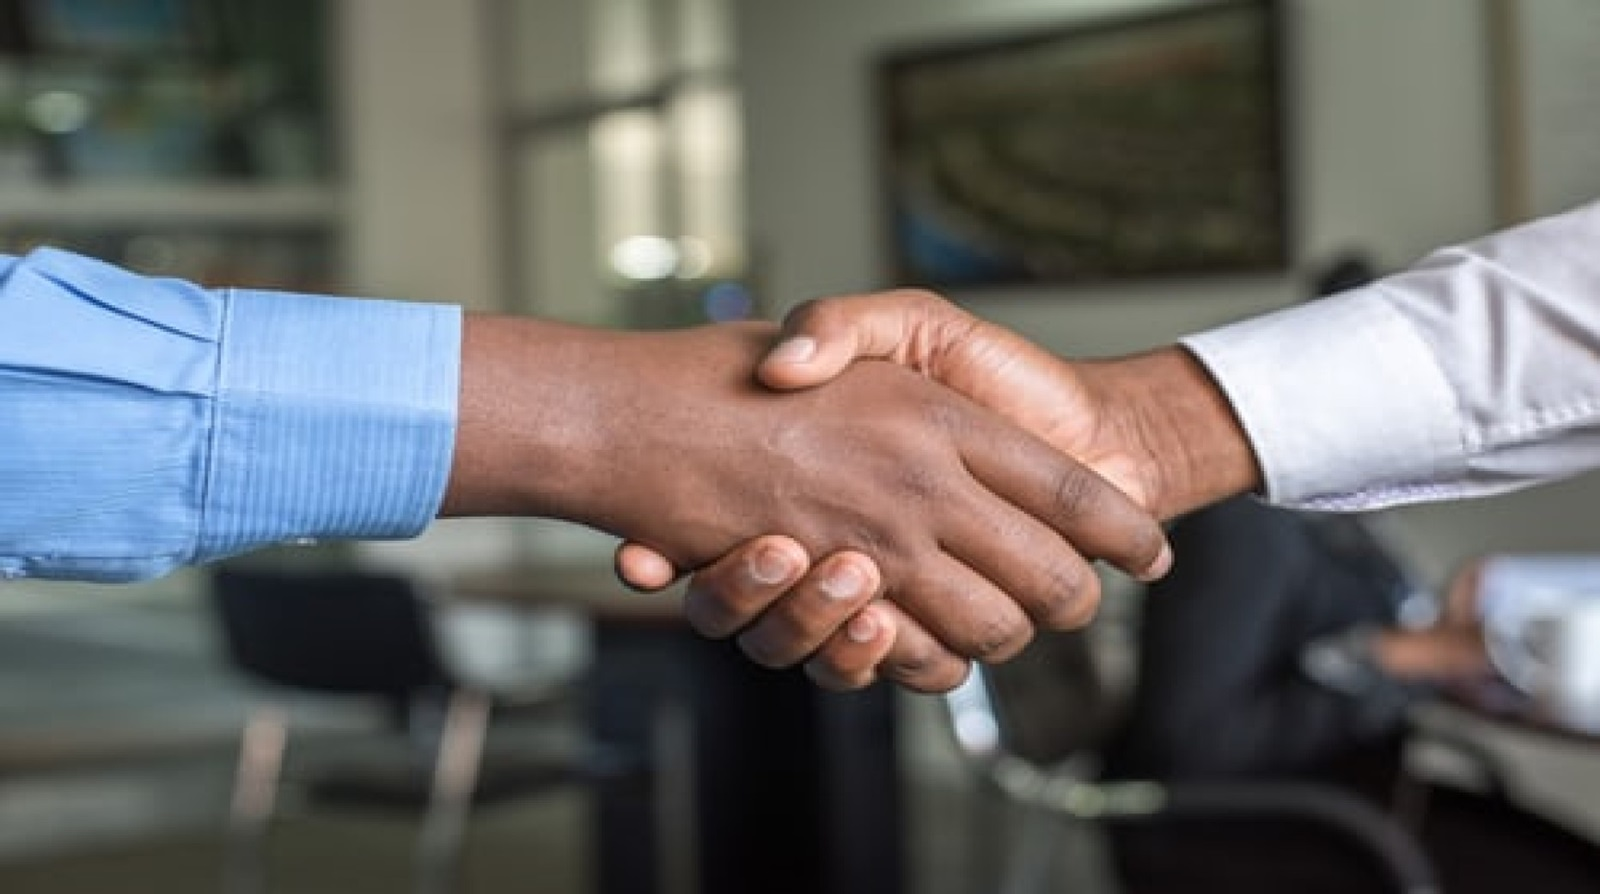 A close-up image of two people shaking hands